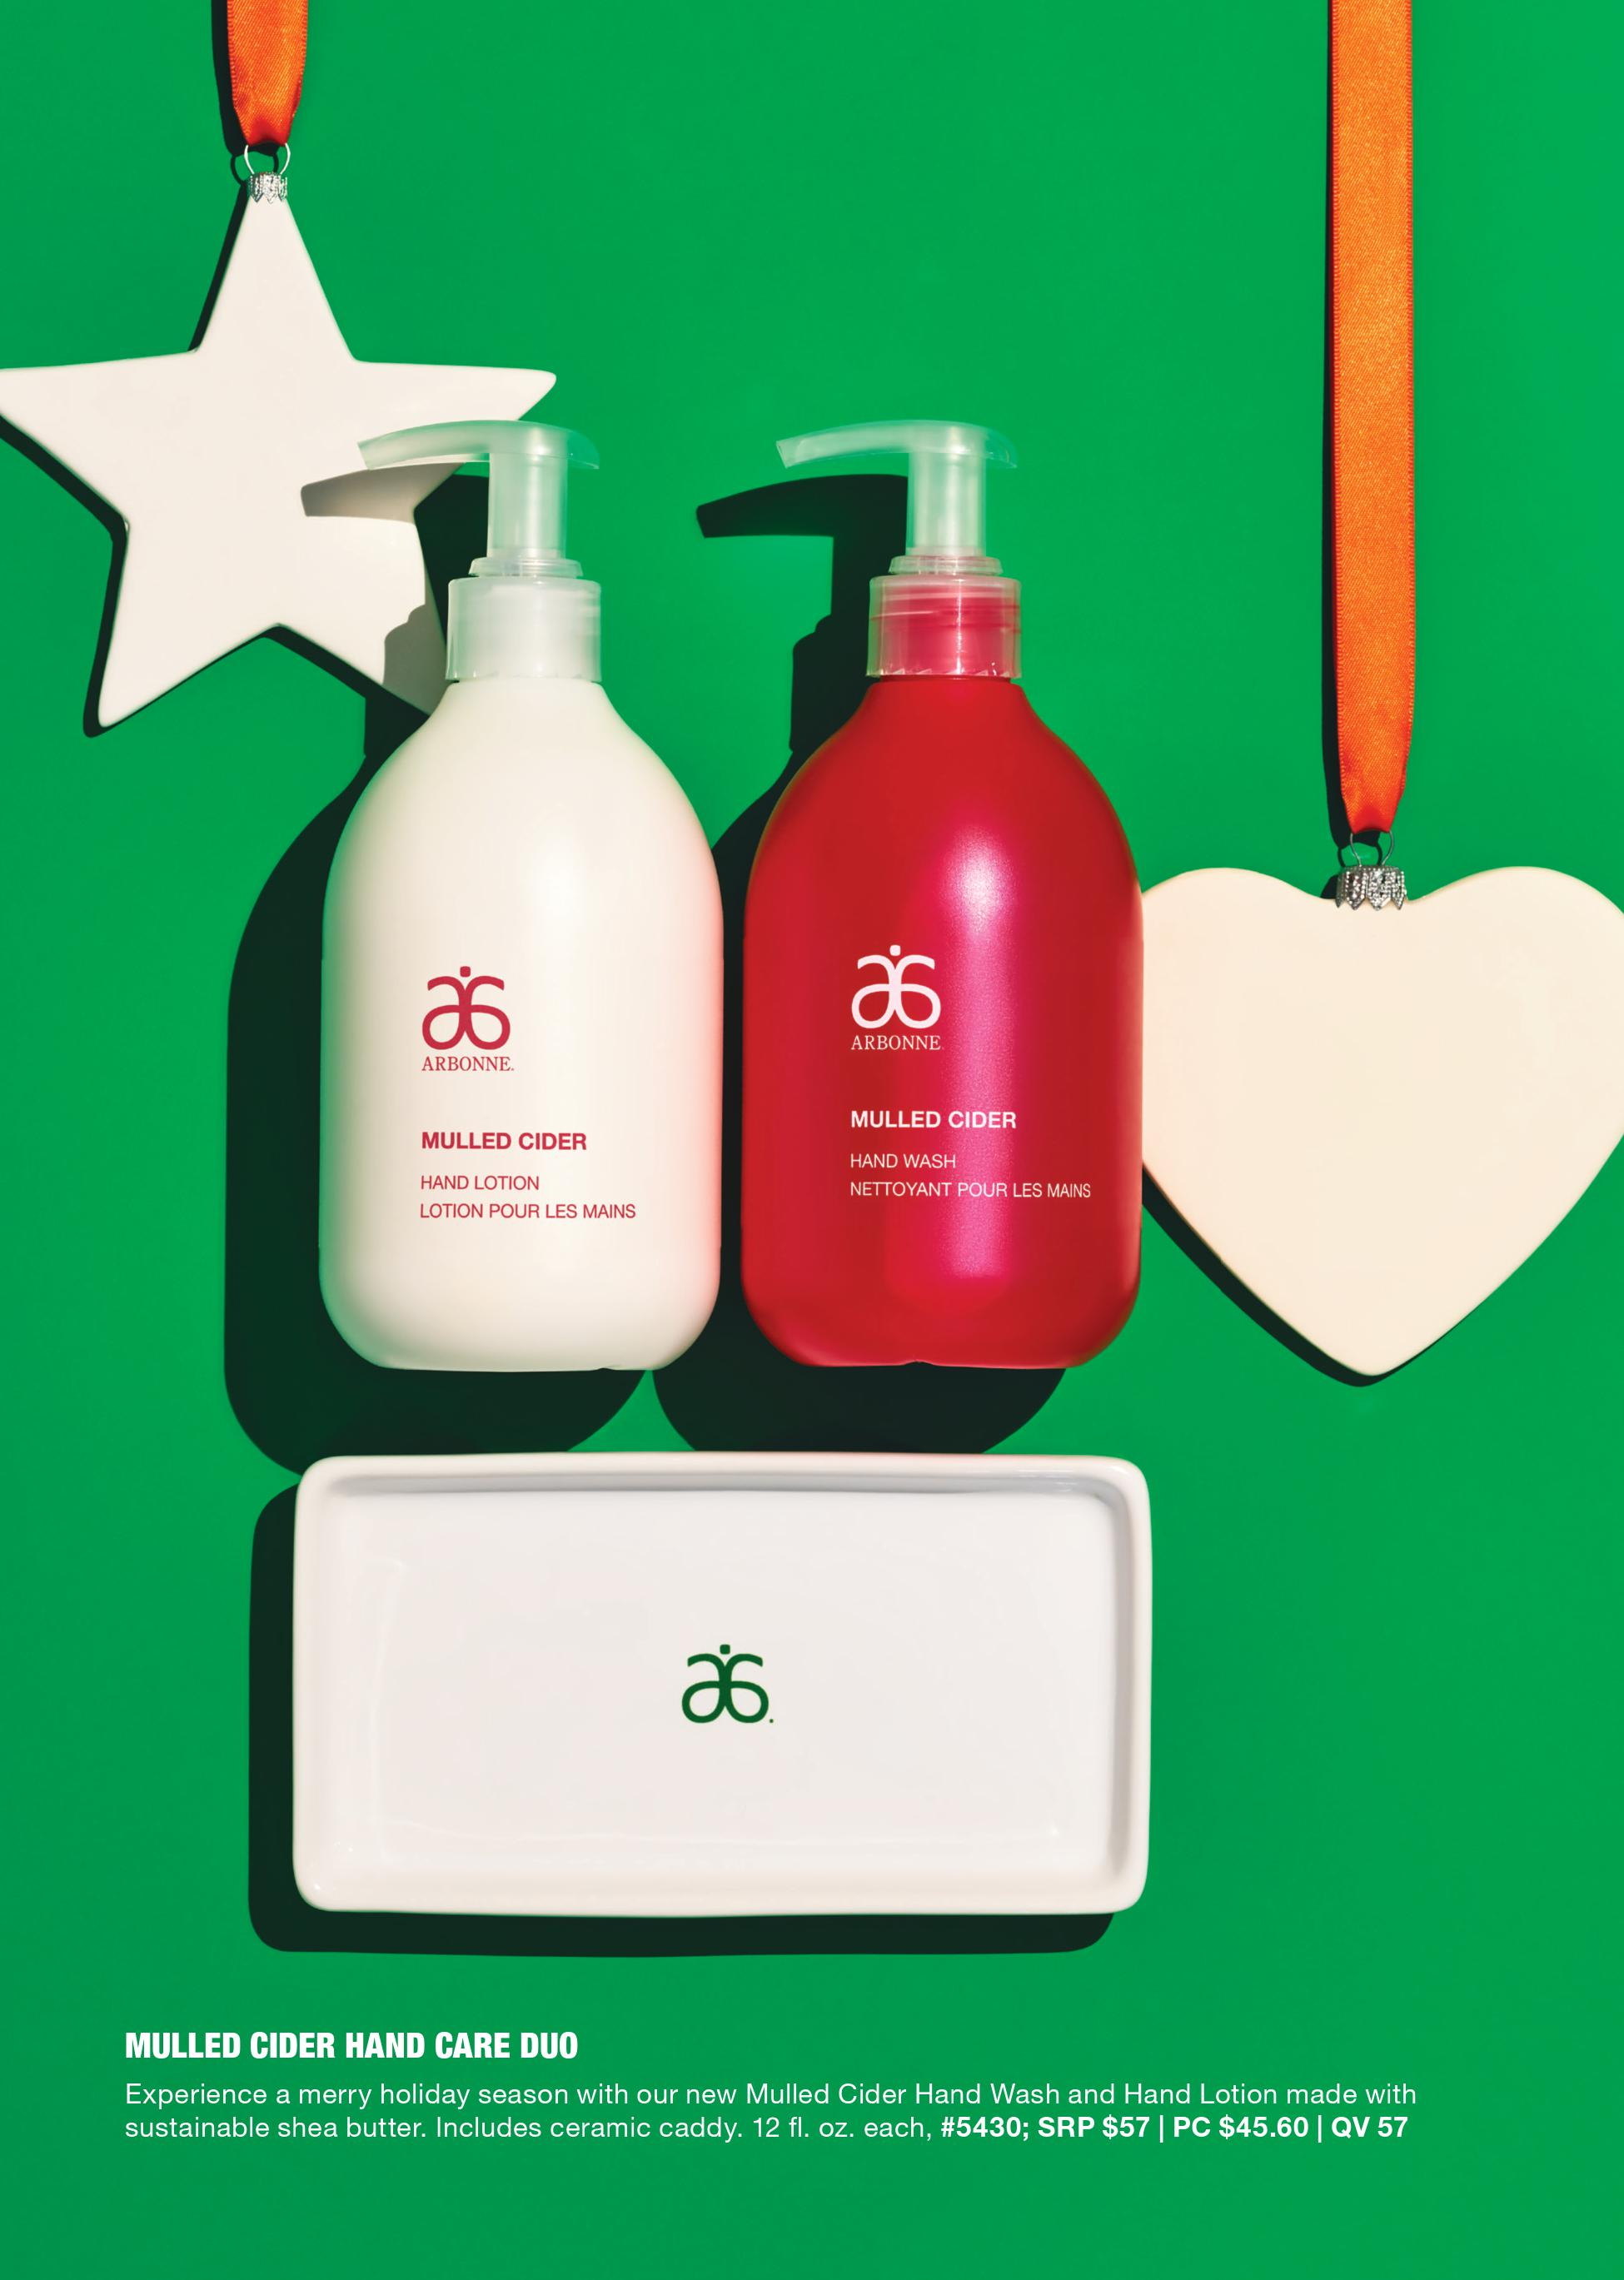 arbonne mulled cider hand care duo